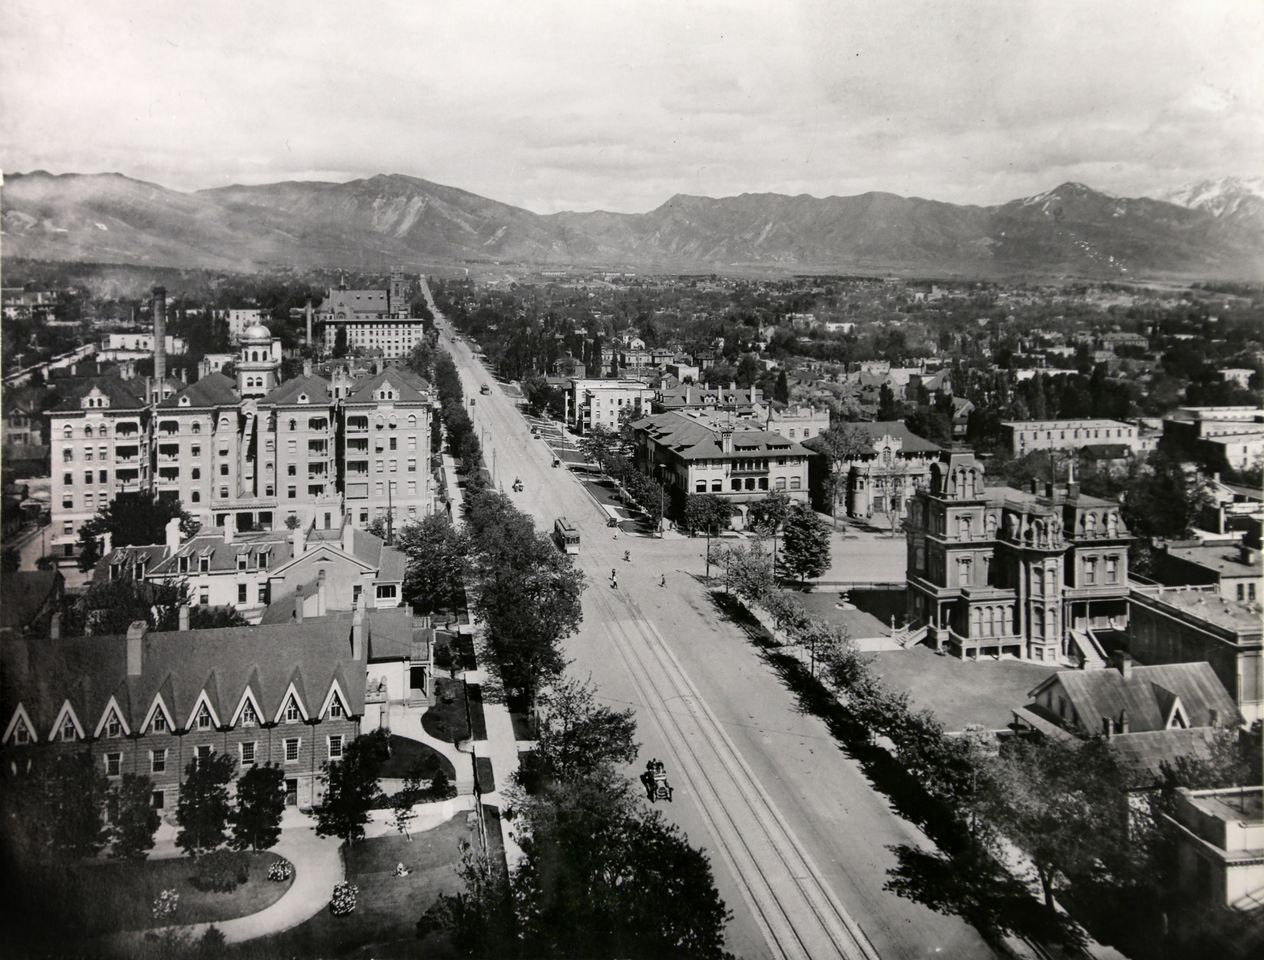 Image Courtesy Utah State Historical Society